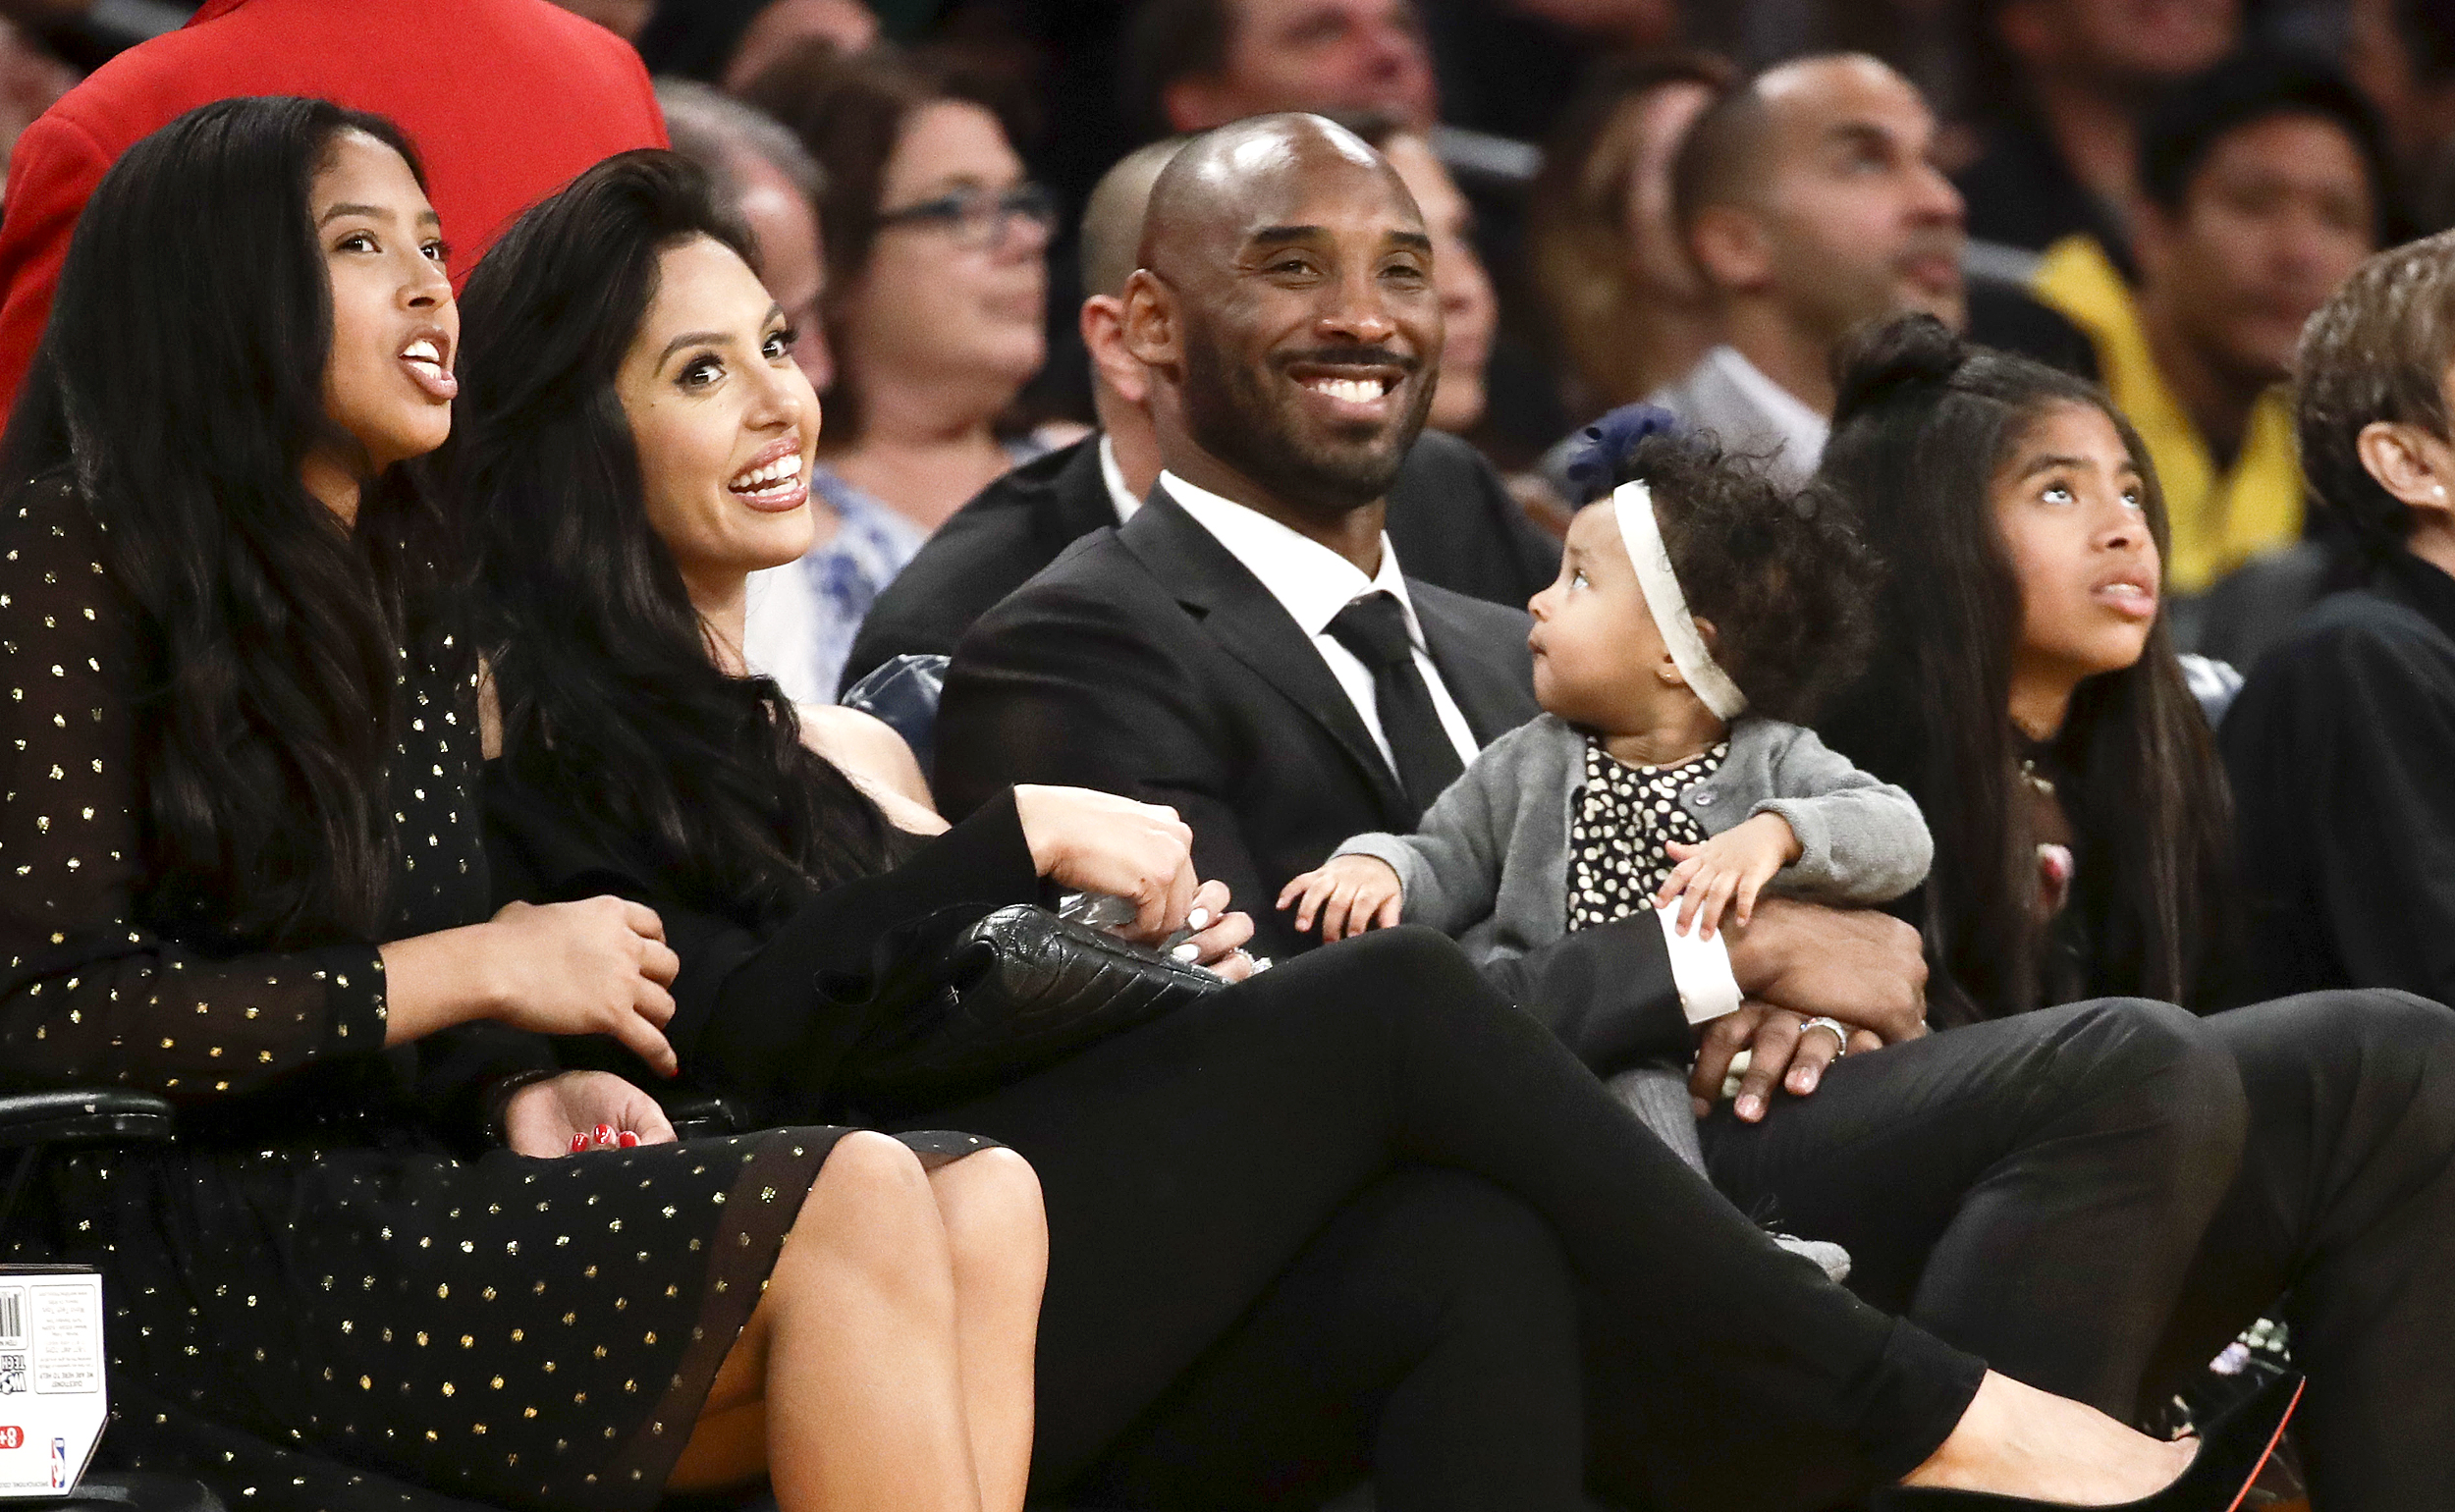 Vanessa Bryant On Loss Of Kobe And Gianna I Need To Be Strong For My 3 Daughters